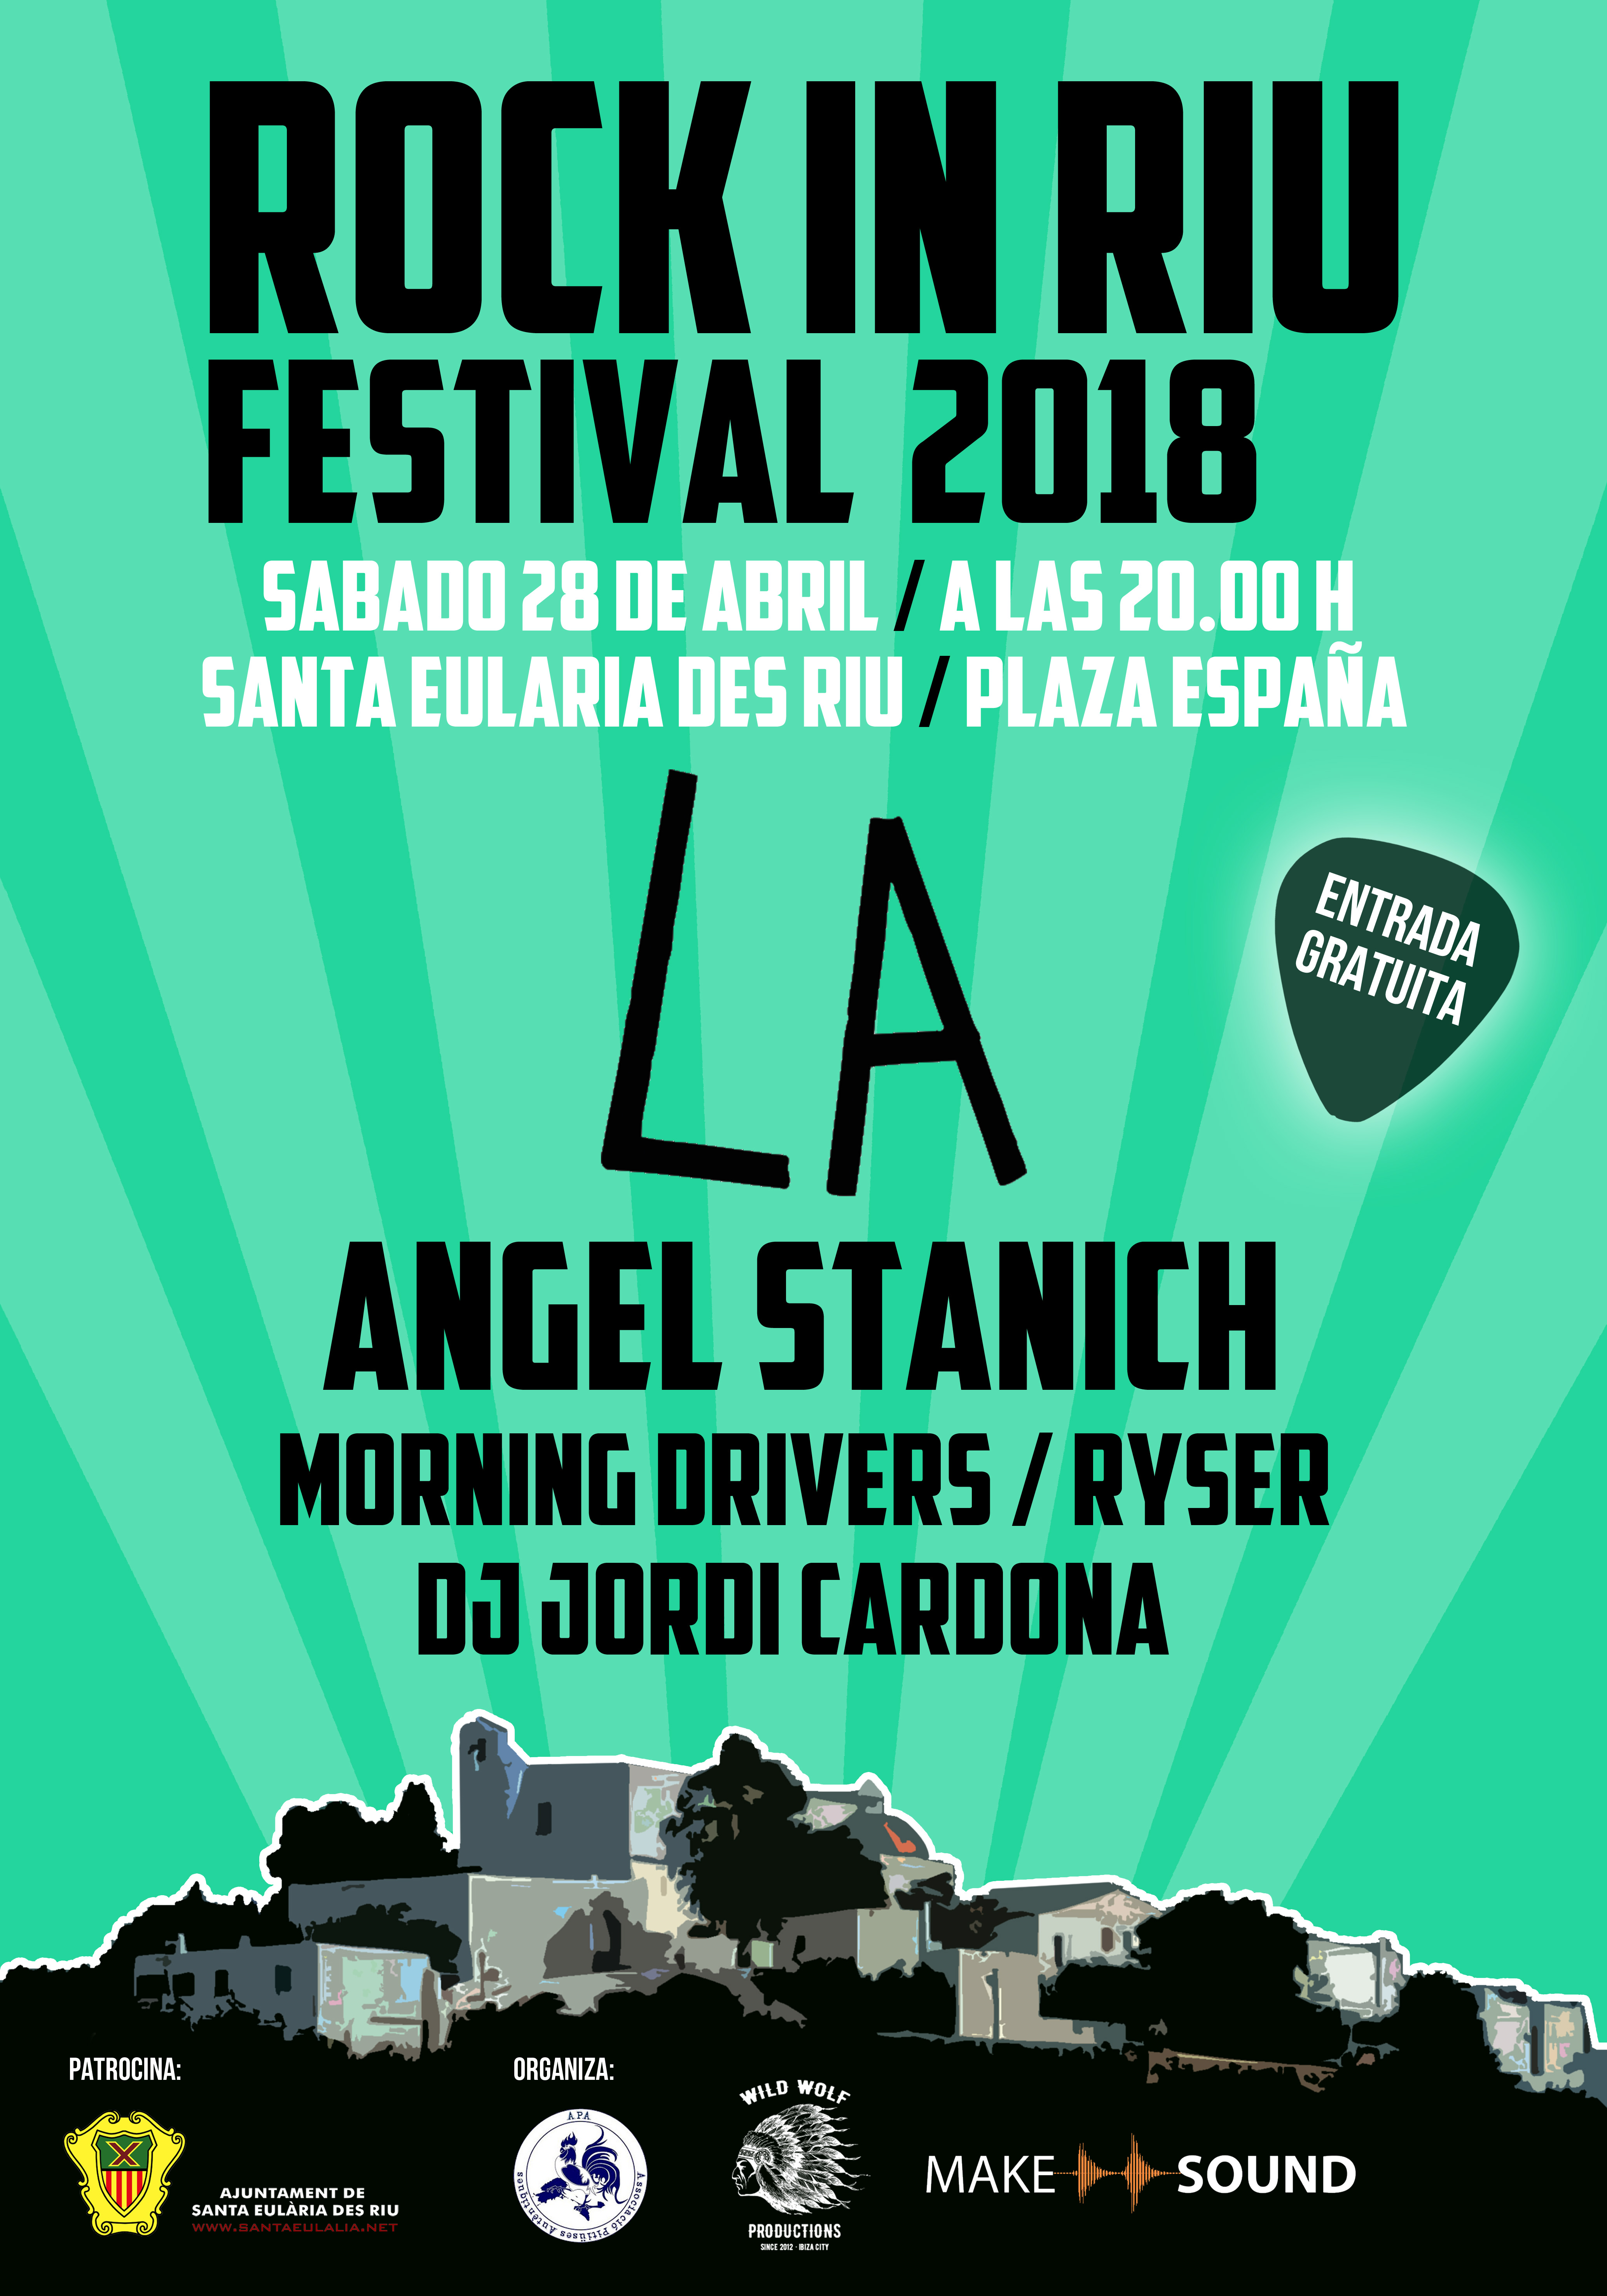 cartel RockInRiu 2018